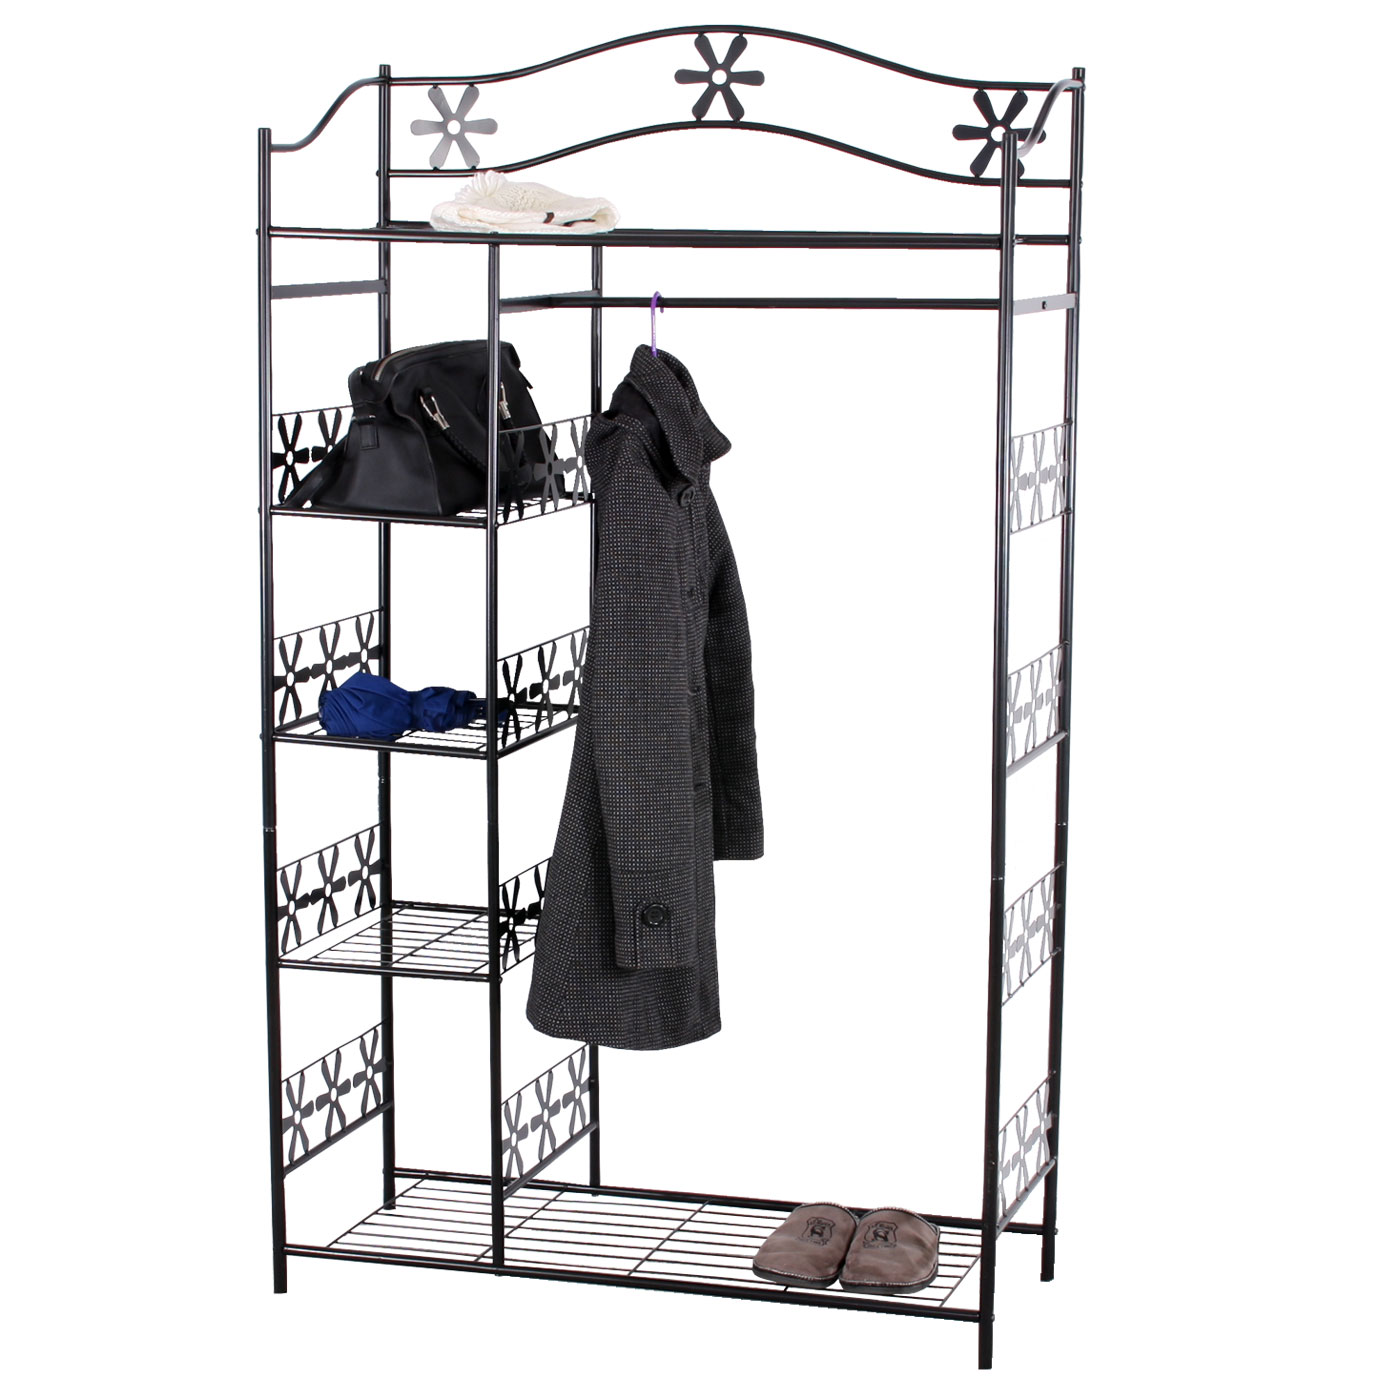 metall garderobe genf garderobenst nder metall regal kaufen bei mendler vertriebs gmbh. Black Bedroom Furniture Sets. Home Design Ideas